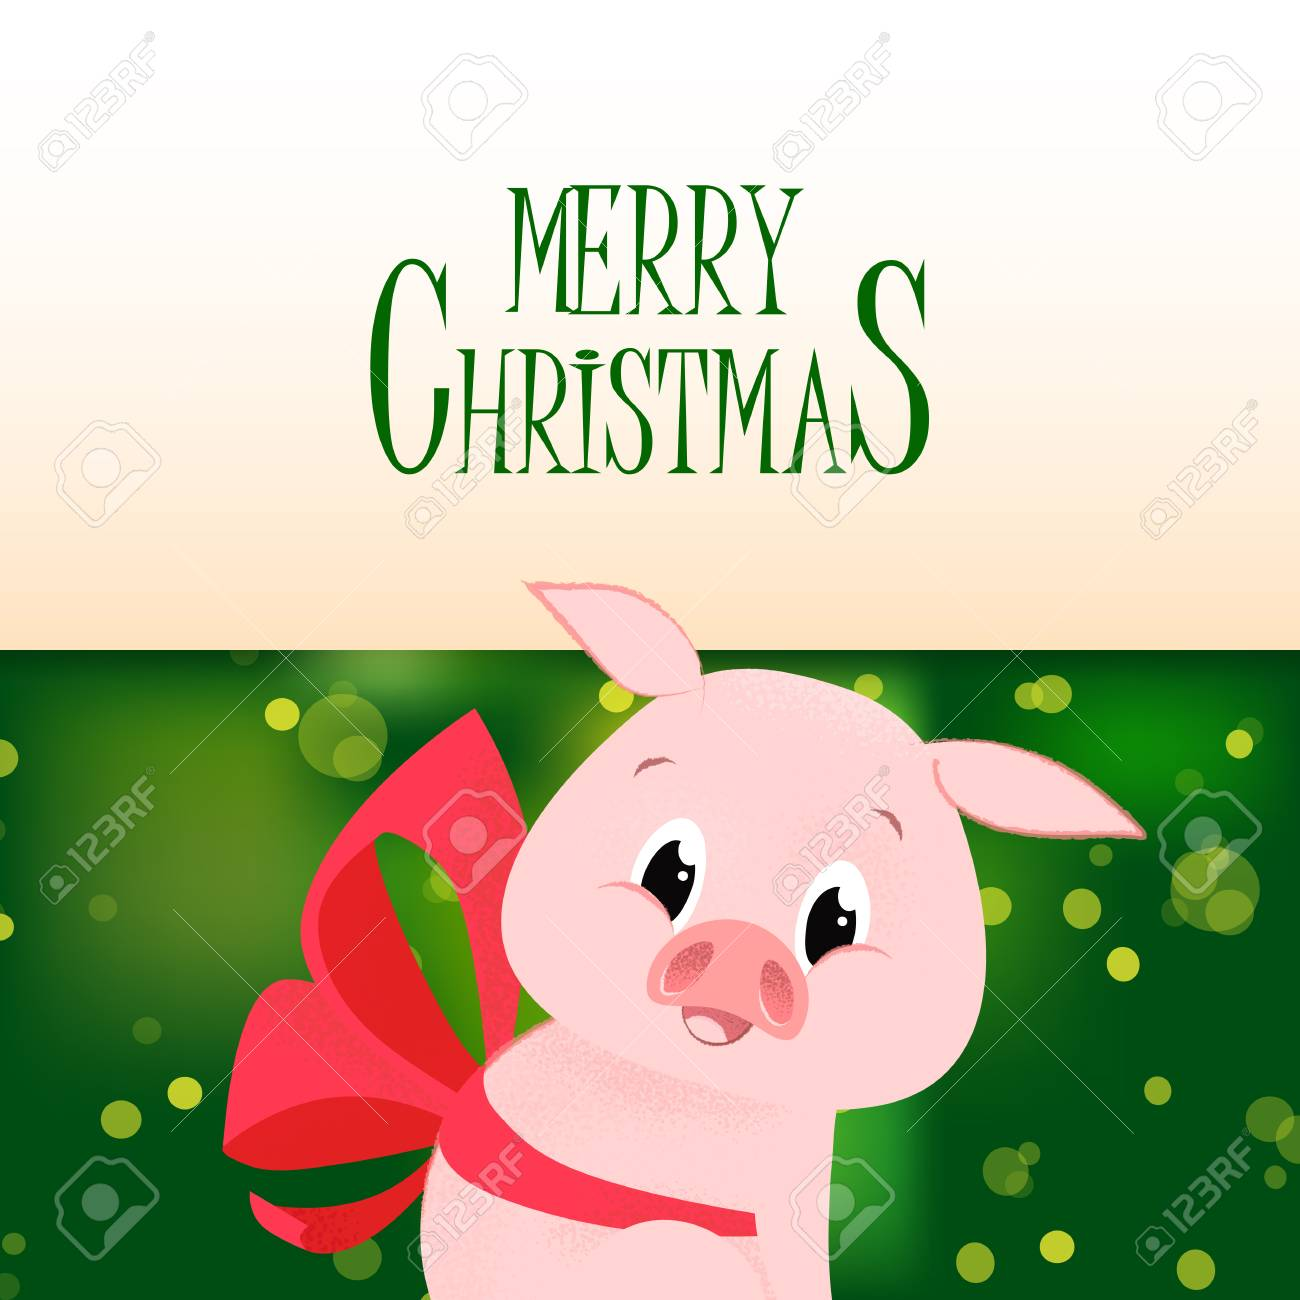 merry christmas poster template design piglet with bow under